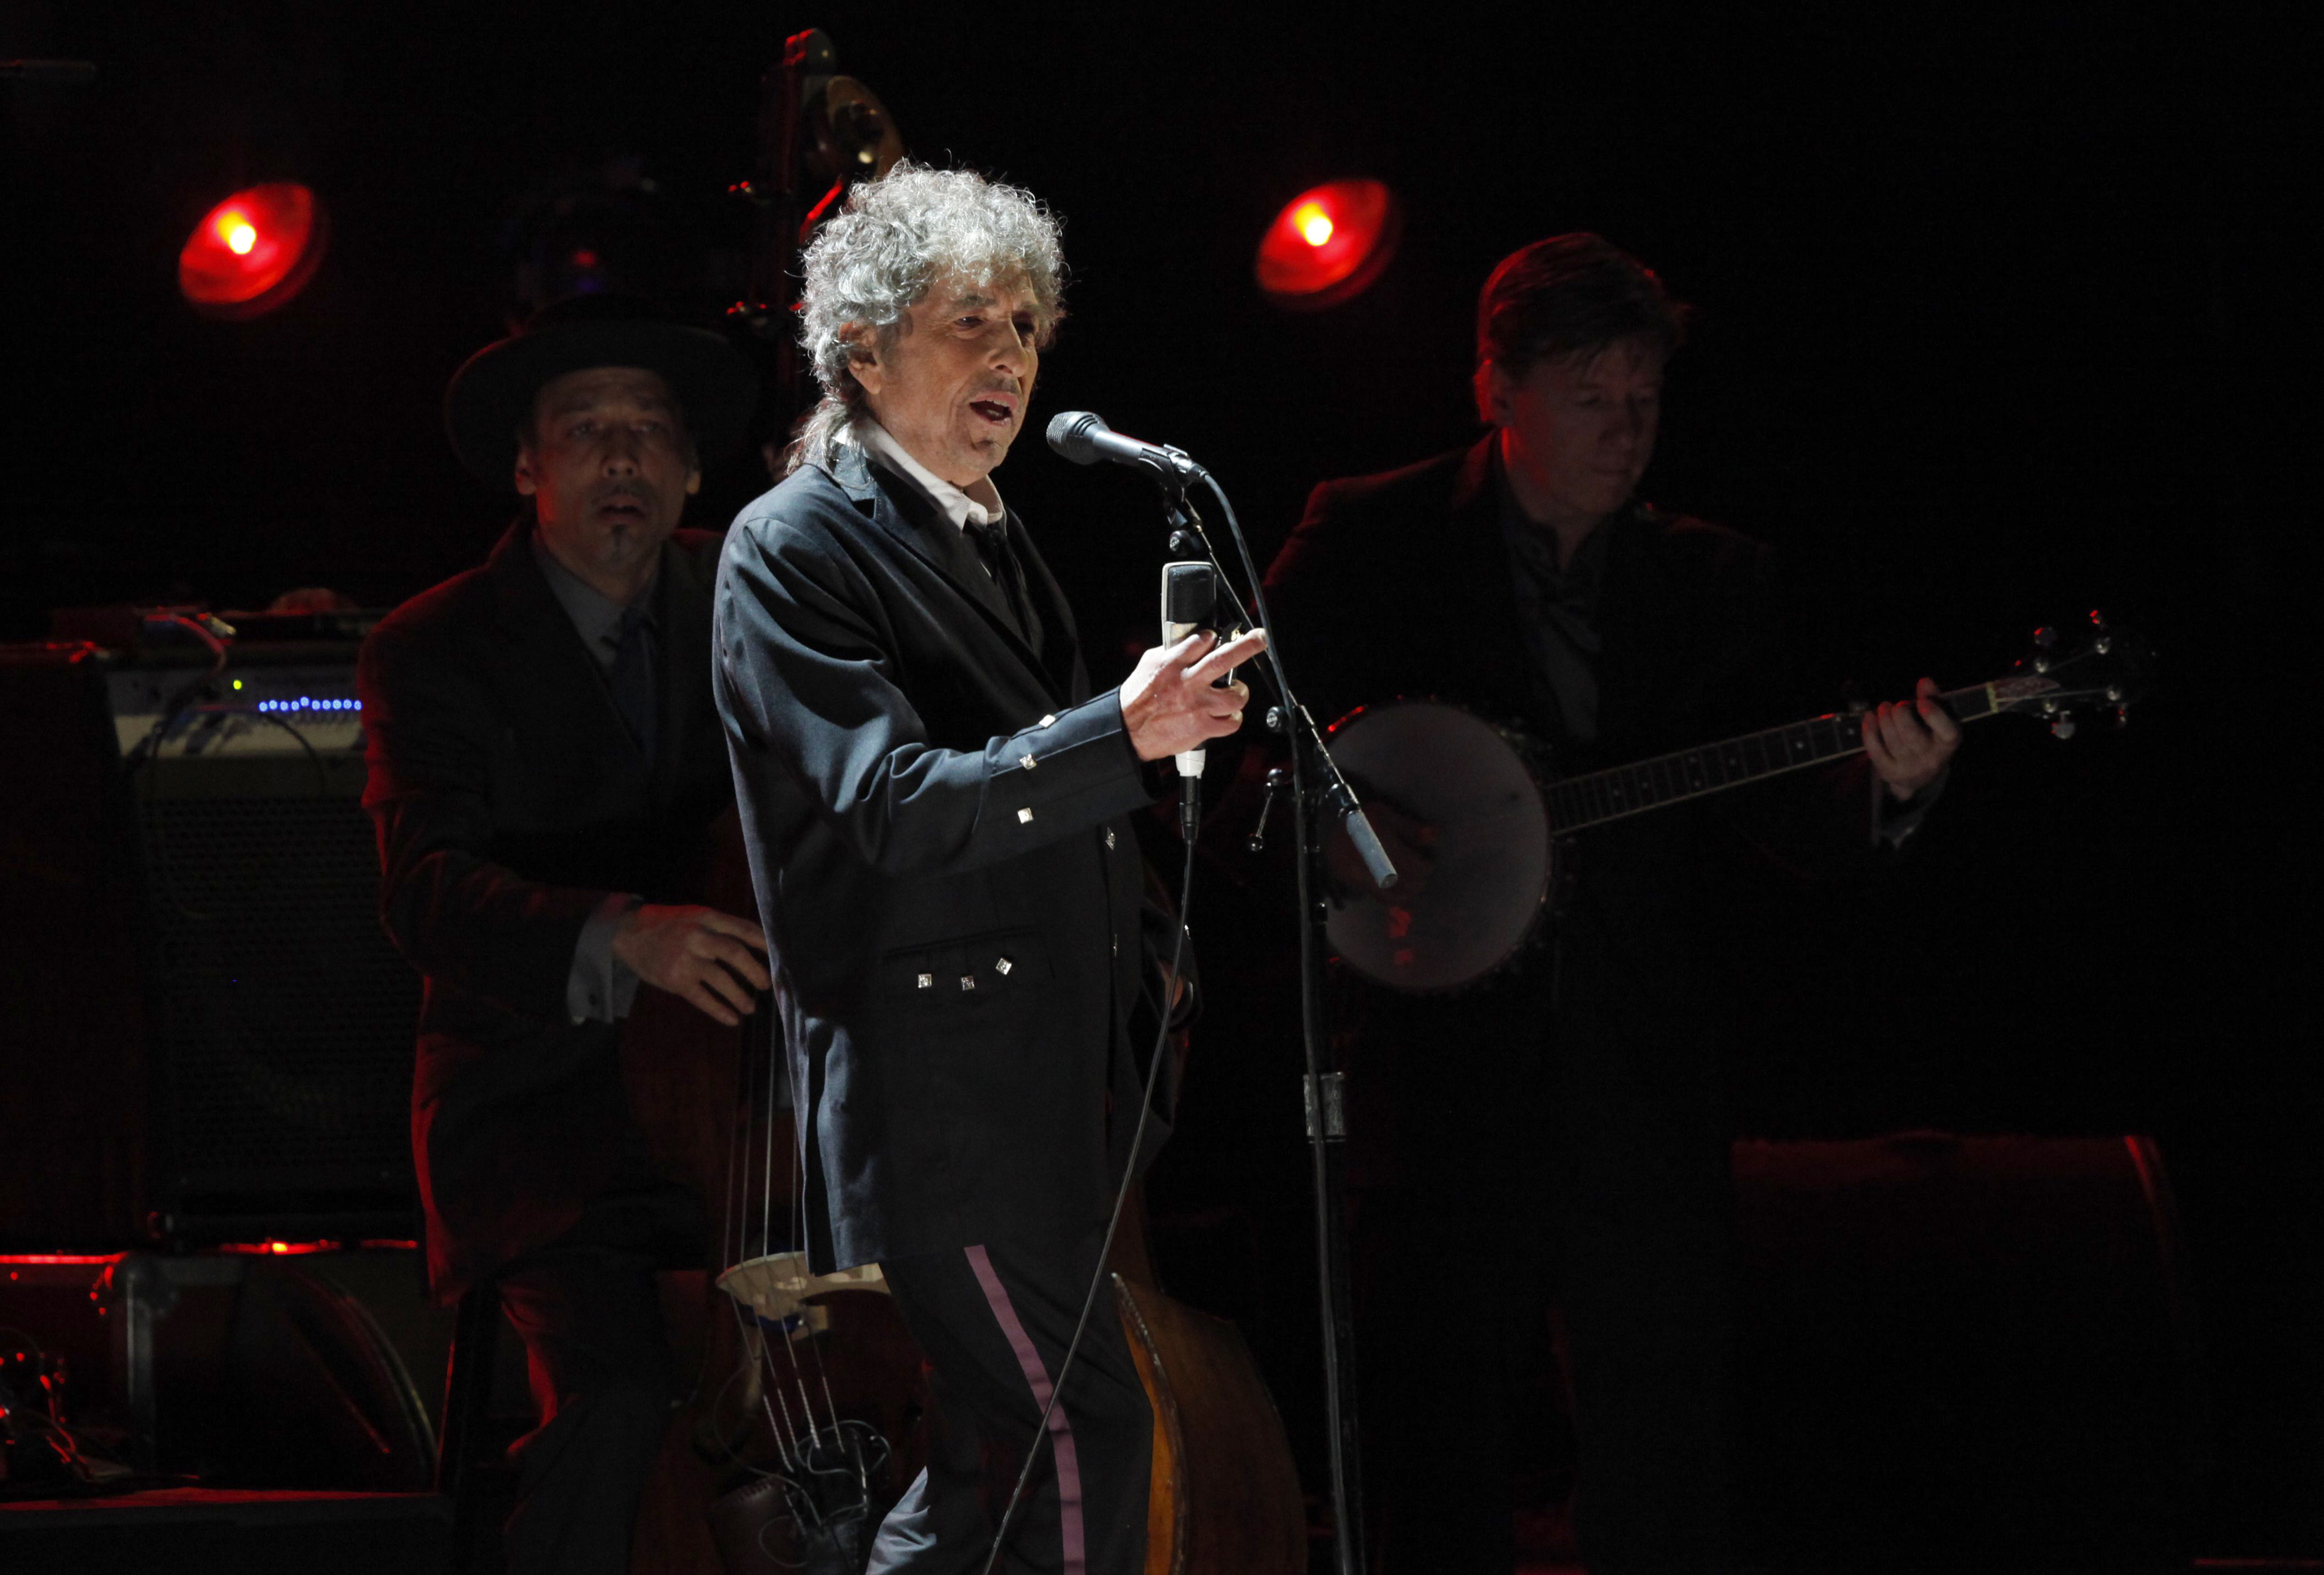 Bob Dylan performs during a segment honoring Director Martin Scorsese at the 17th Annual Critics' Choice Movie Awards in Los Angeles